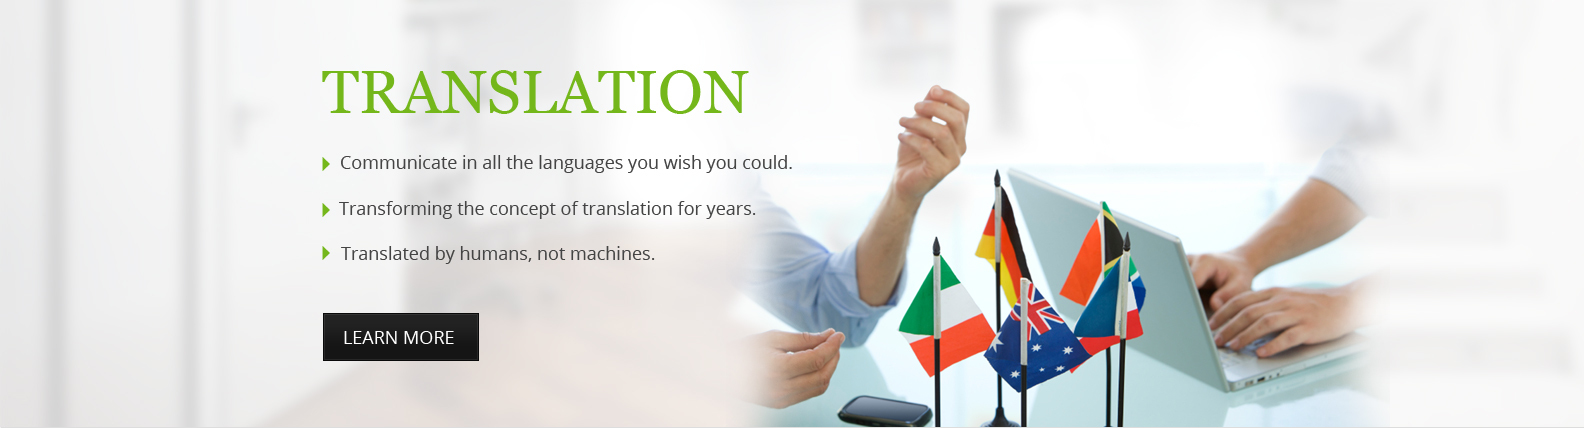 language in proferssionalism Lingualinx, inc is a language service provider that offers document translation  i want to express my appreciation for your professionalism and kindness.